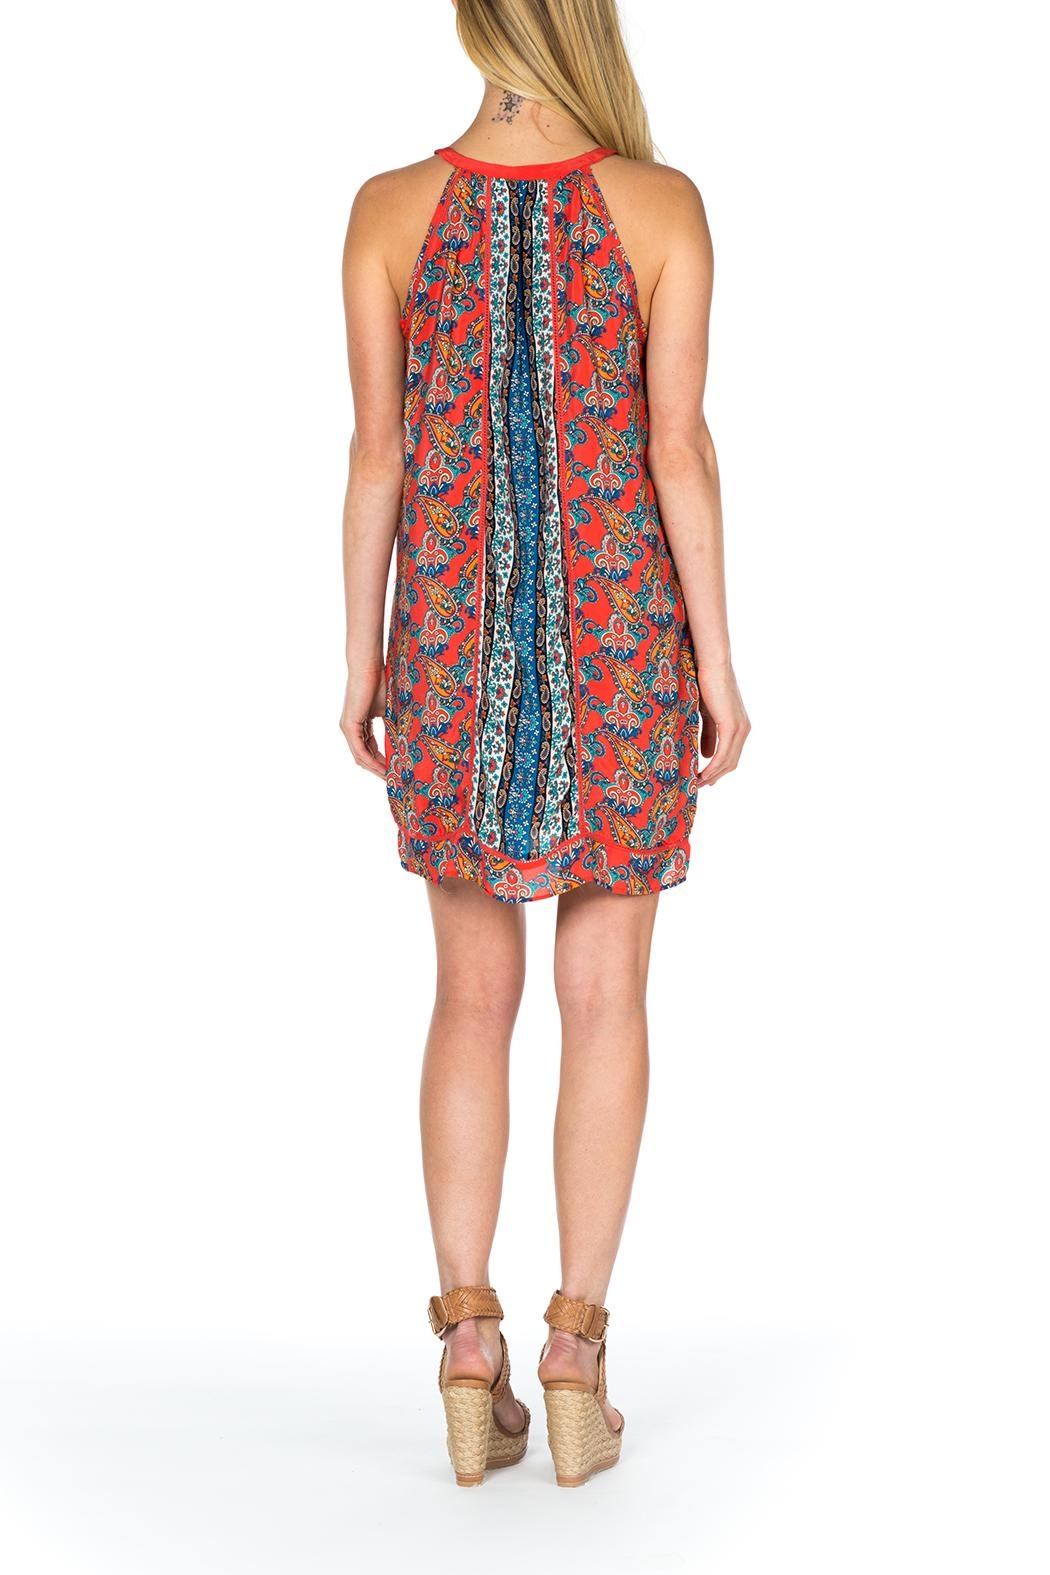 Tolani Savannah Silk Dress - Front Full Image